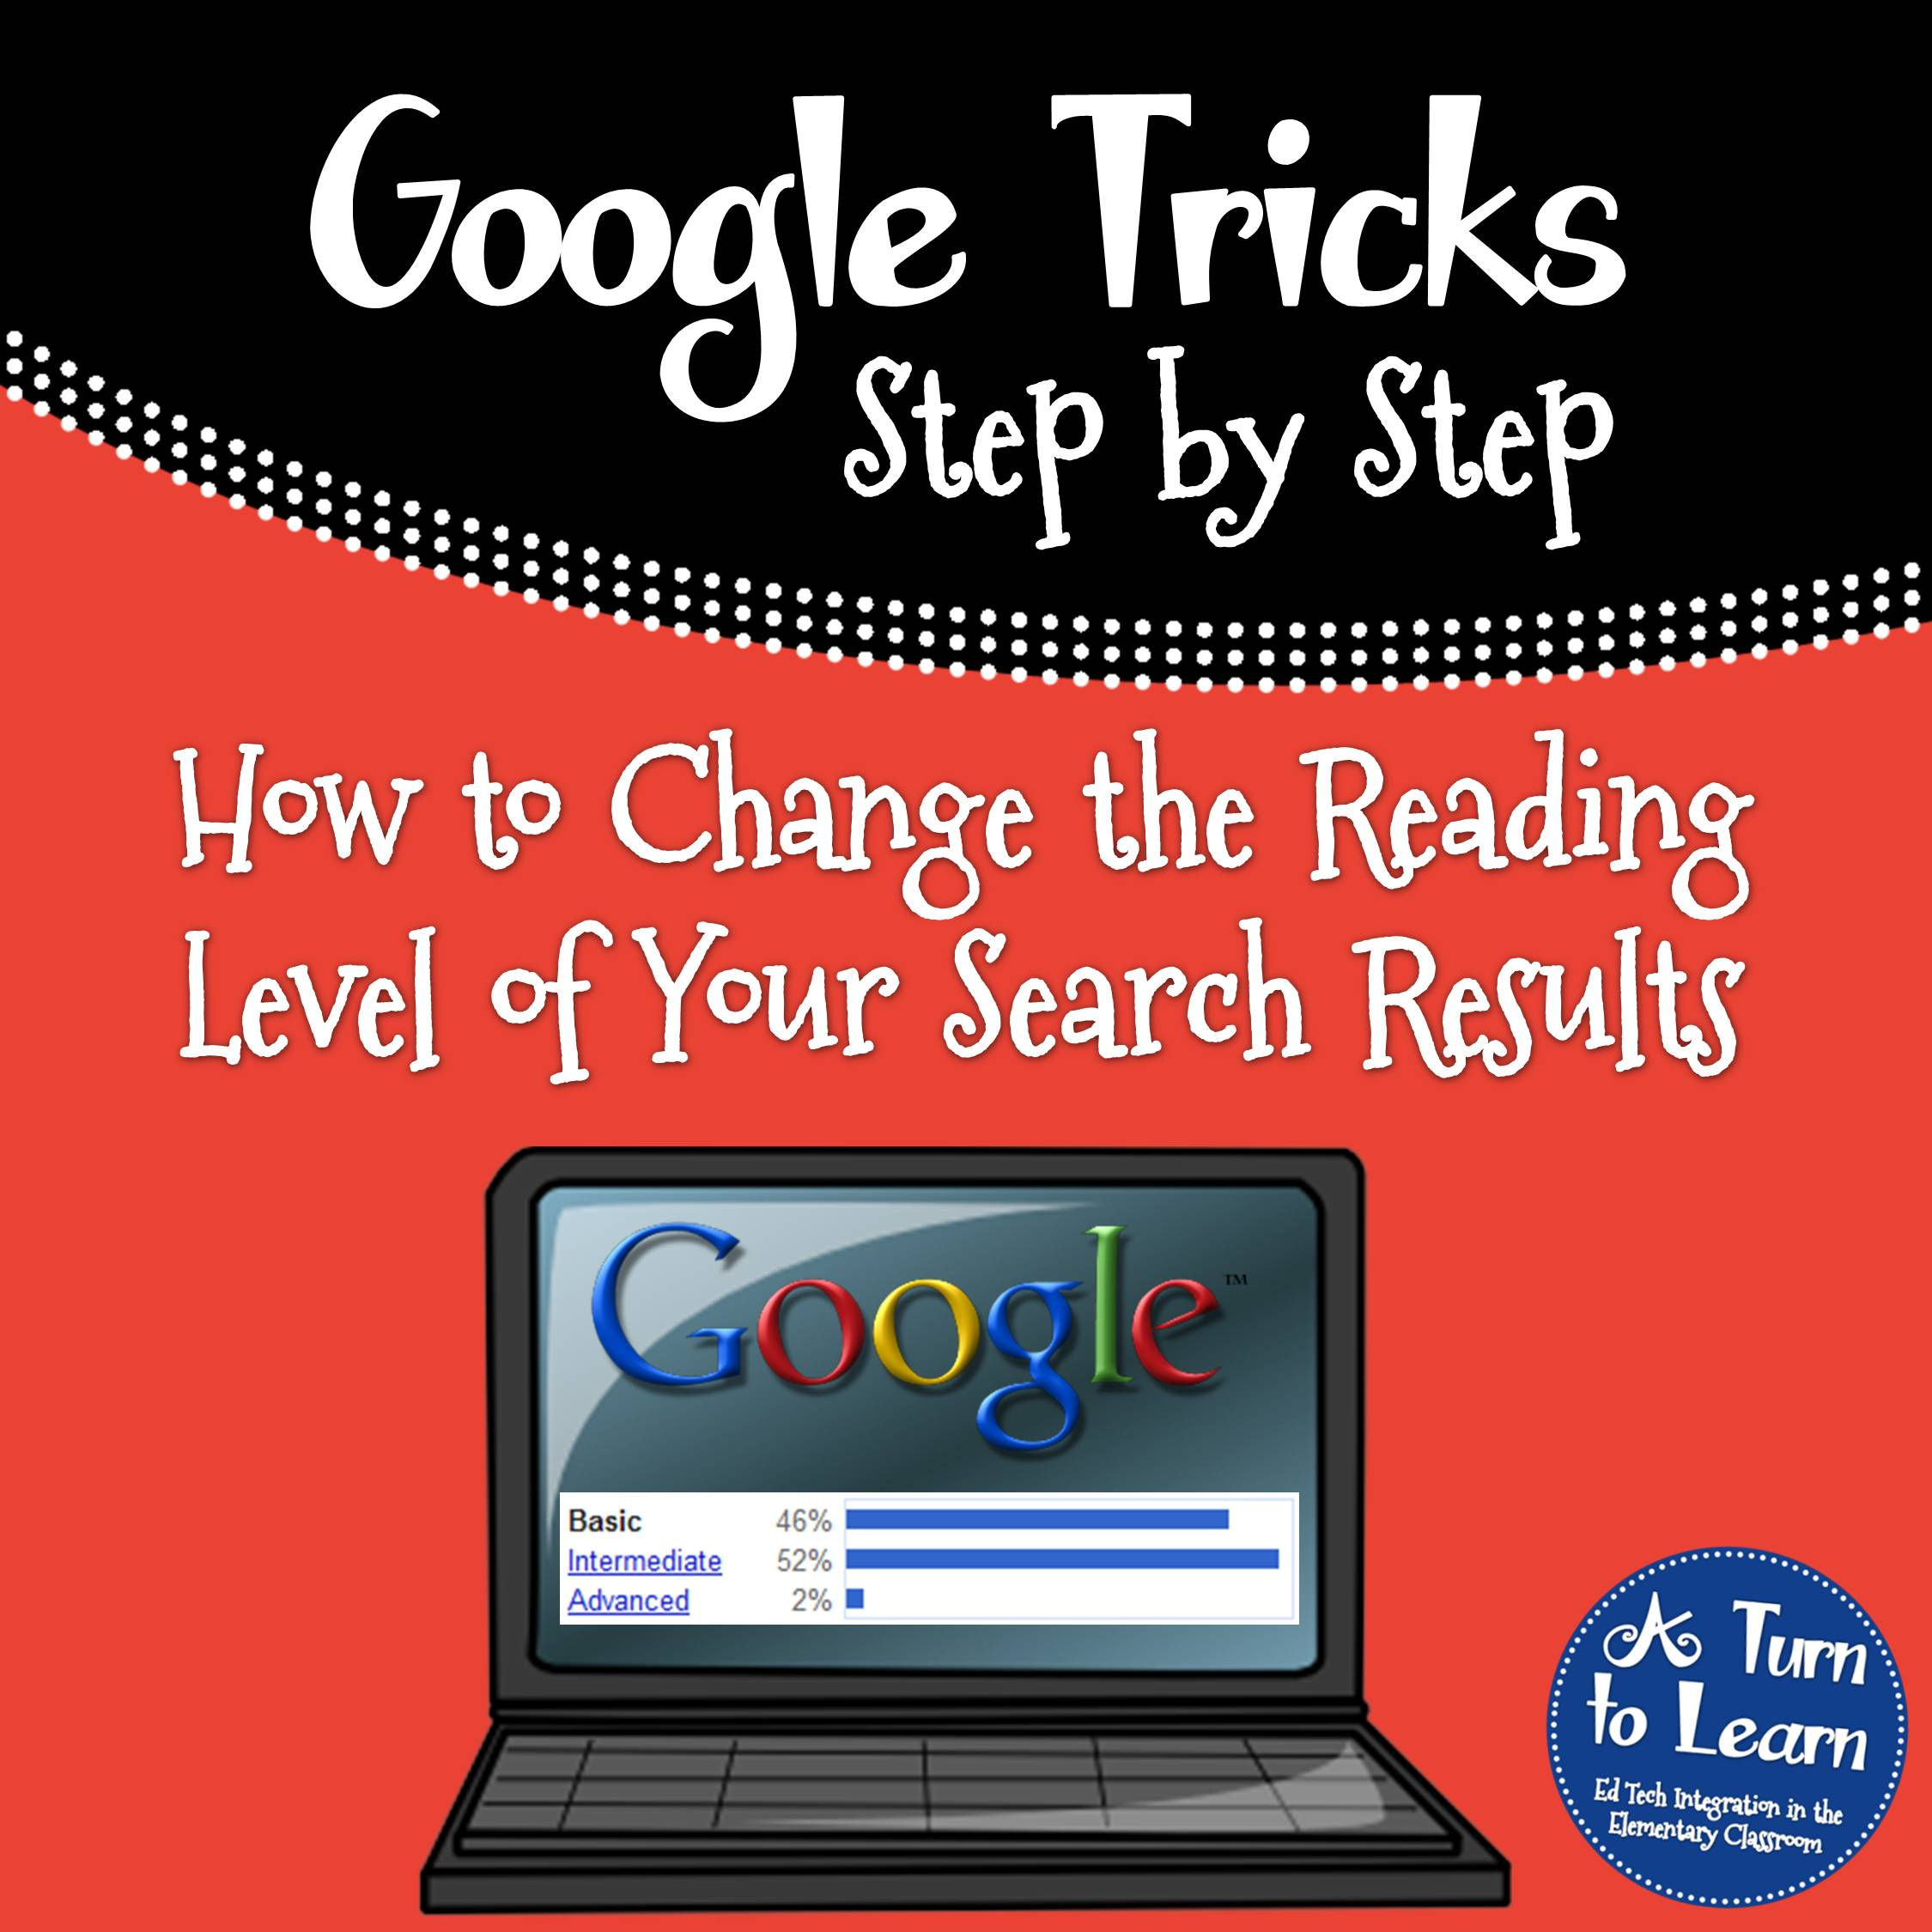 7 Reasons Google Search Results Vary Dramatically